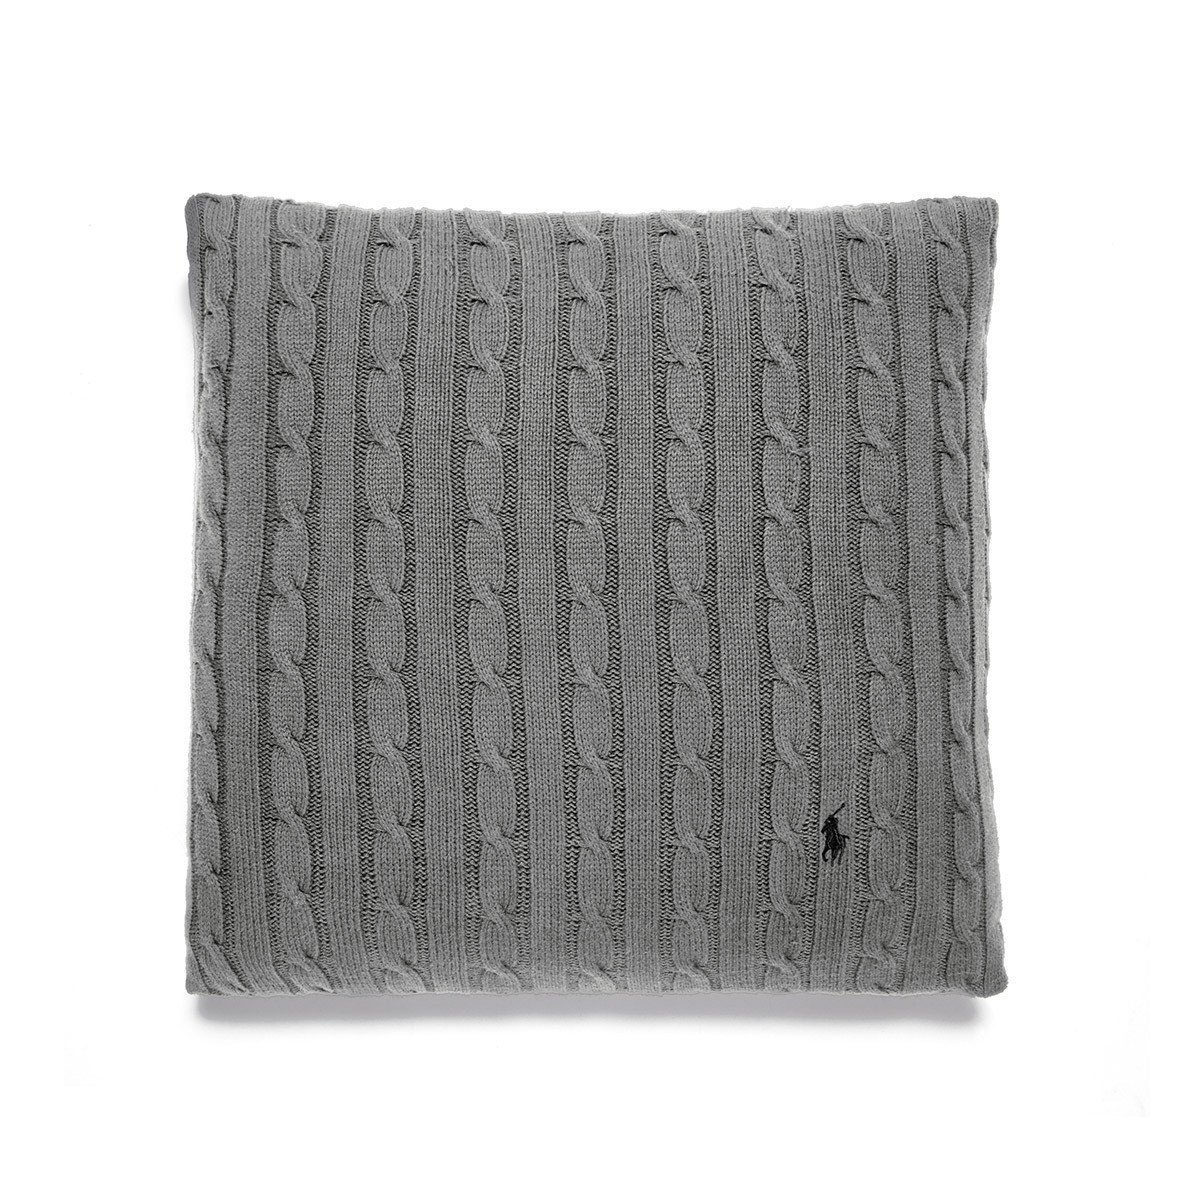 Cushion Cover Cable